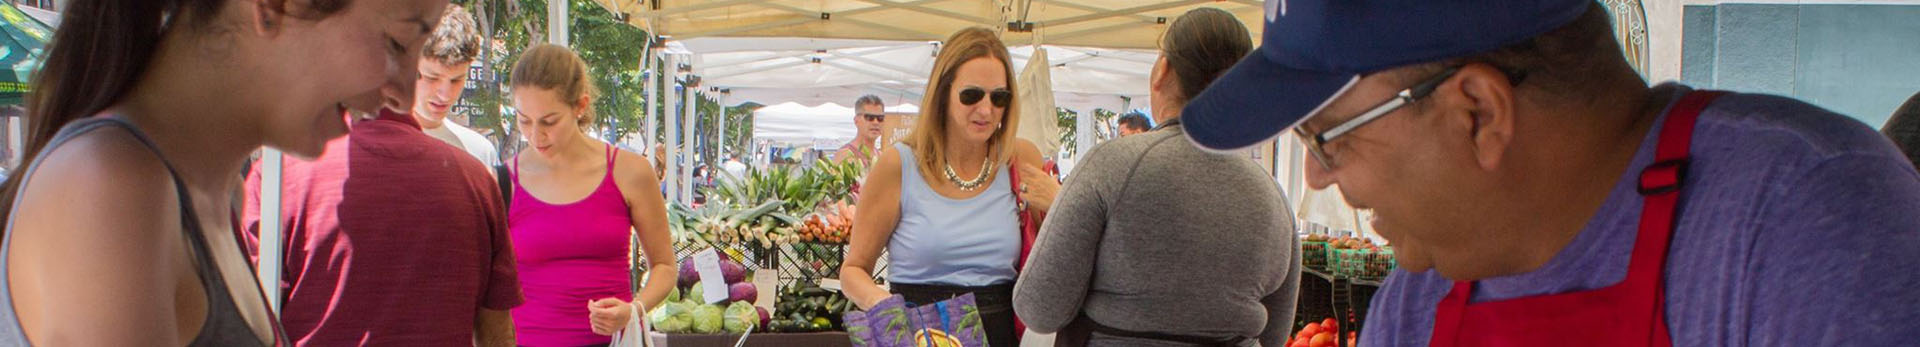 Picture of Westwood Village Farmers' Market